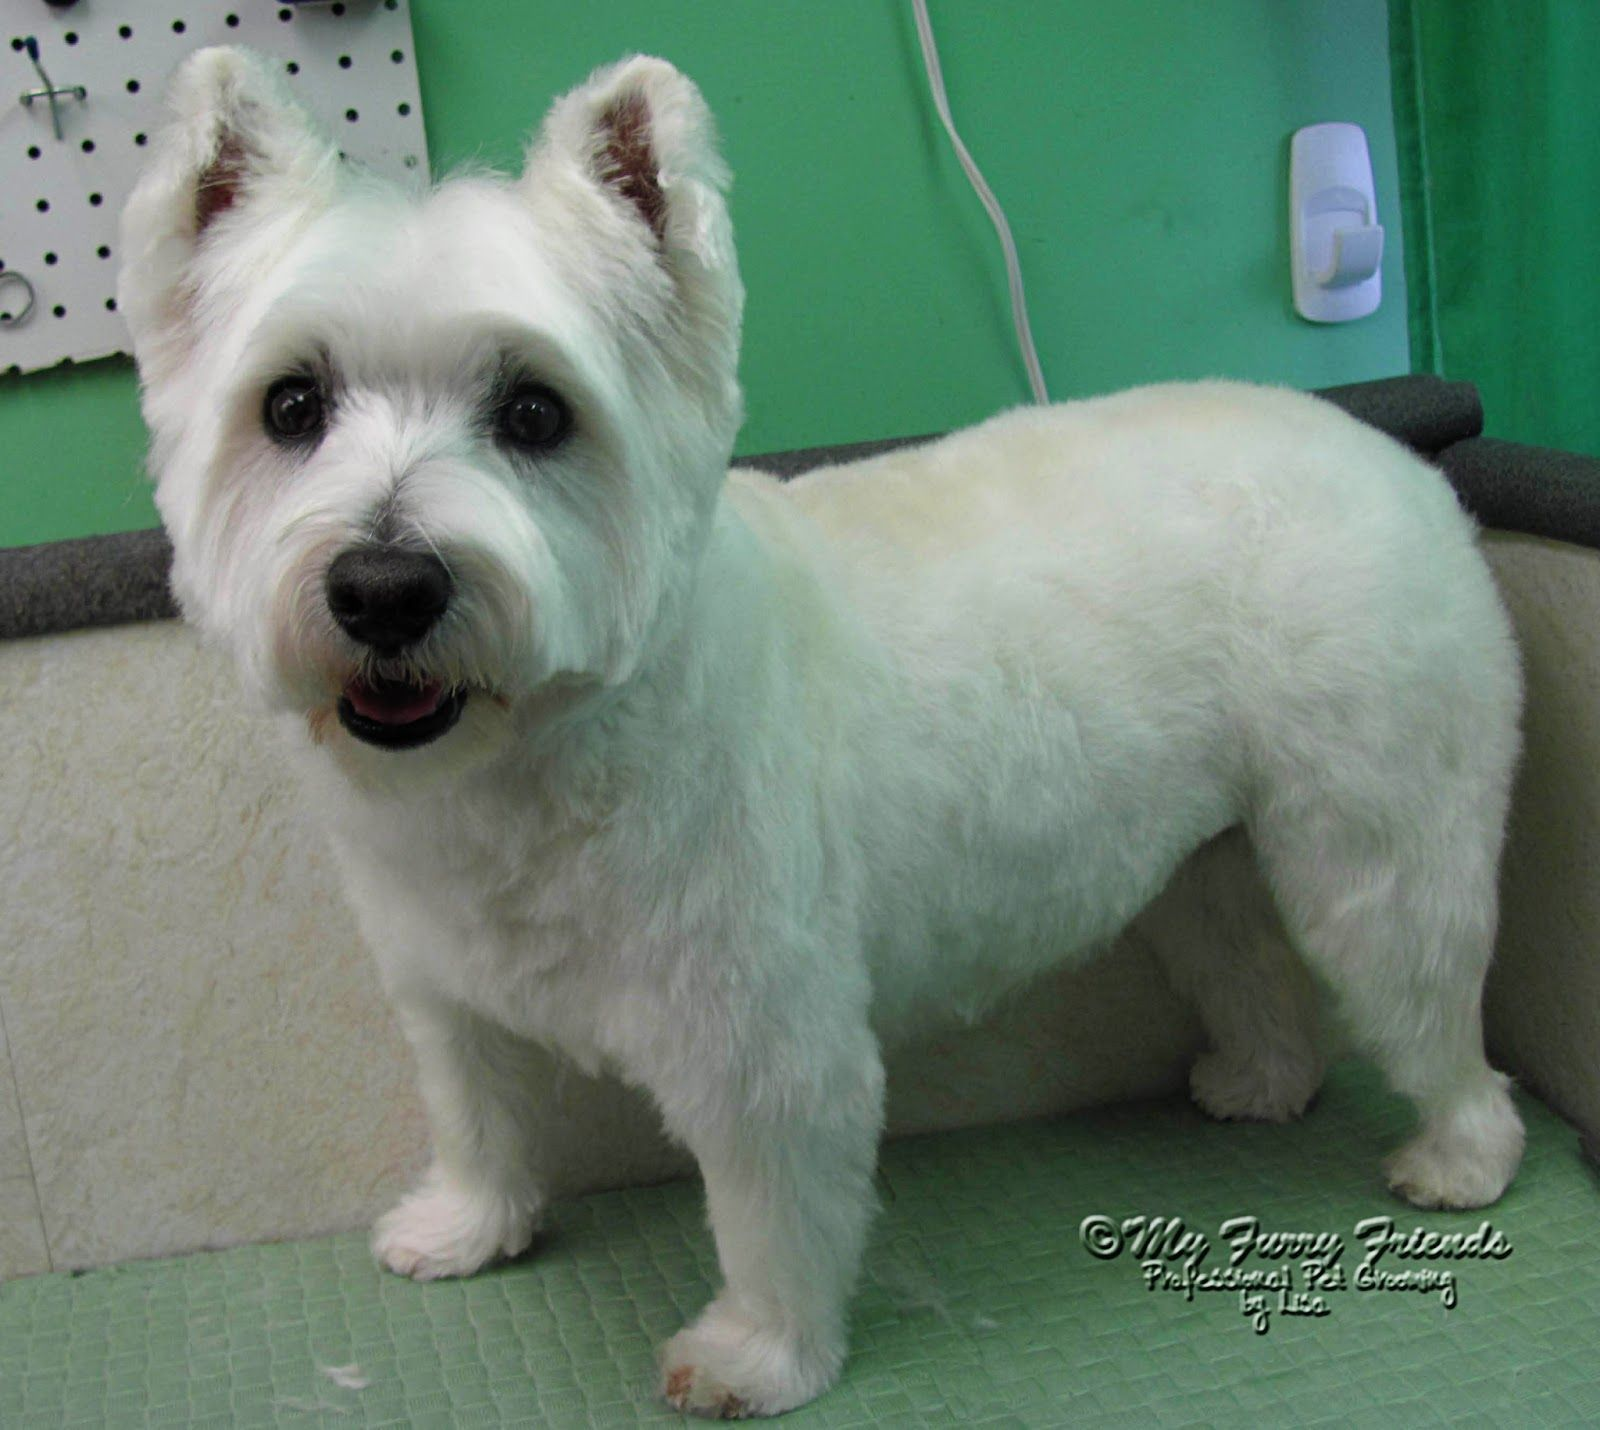 cairn terrier haircuts | fade haircut | cairn terriers | dog